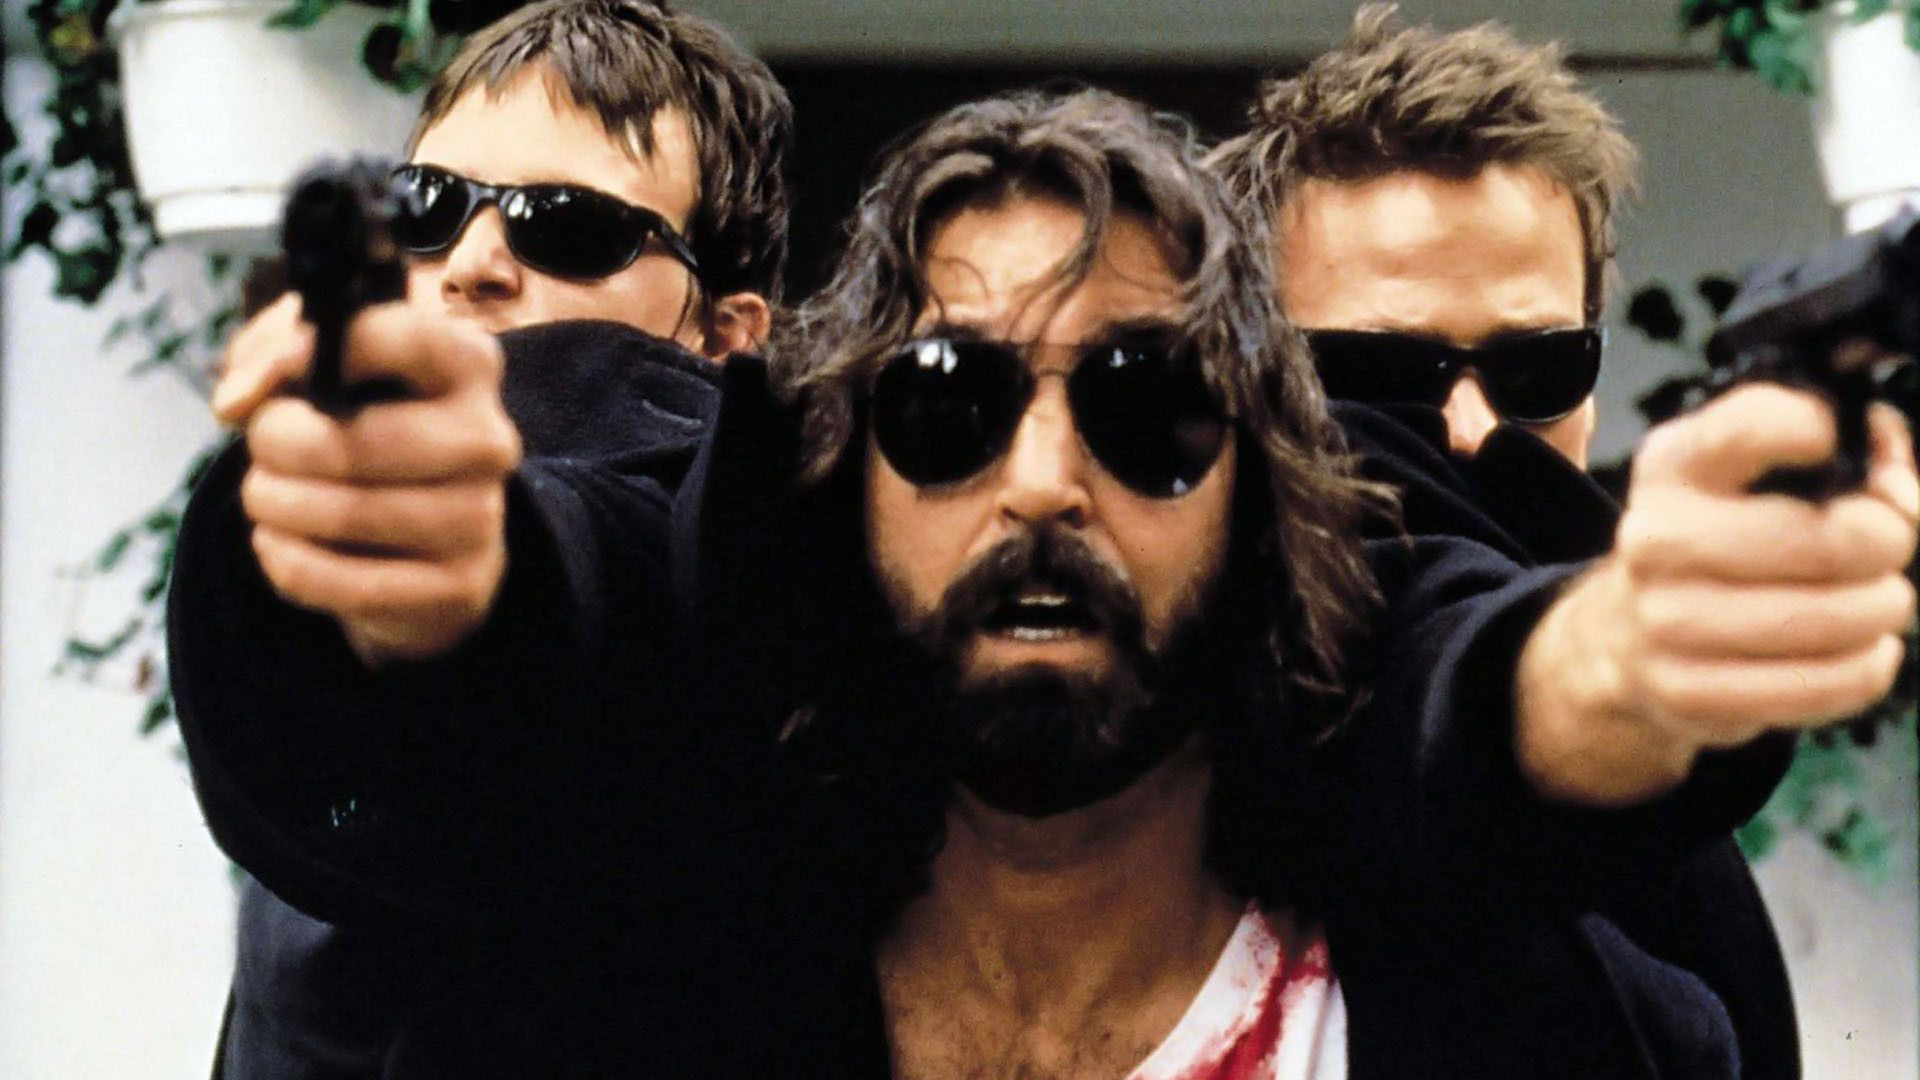 1920x1080 1920x1080px The Boondock Saints Wallpaper - WallpaperSafari